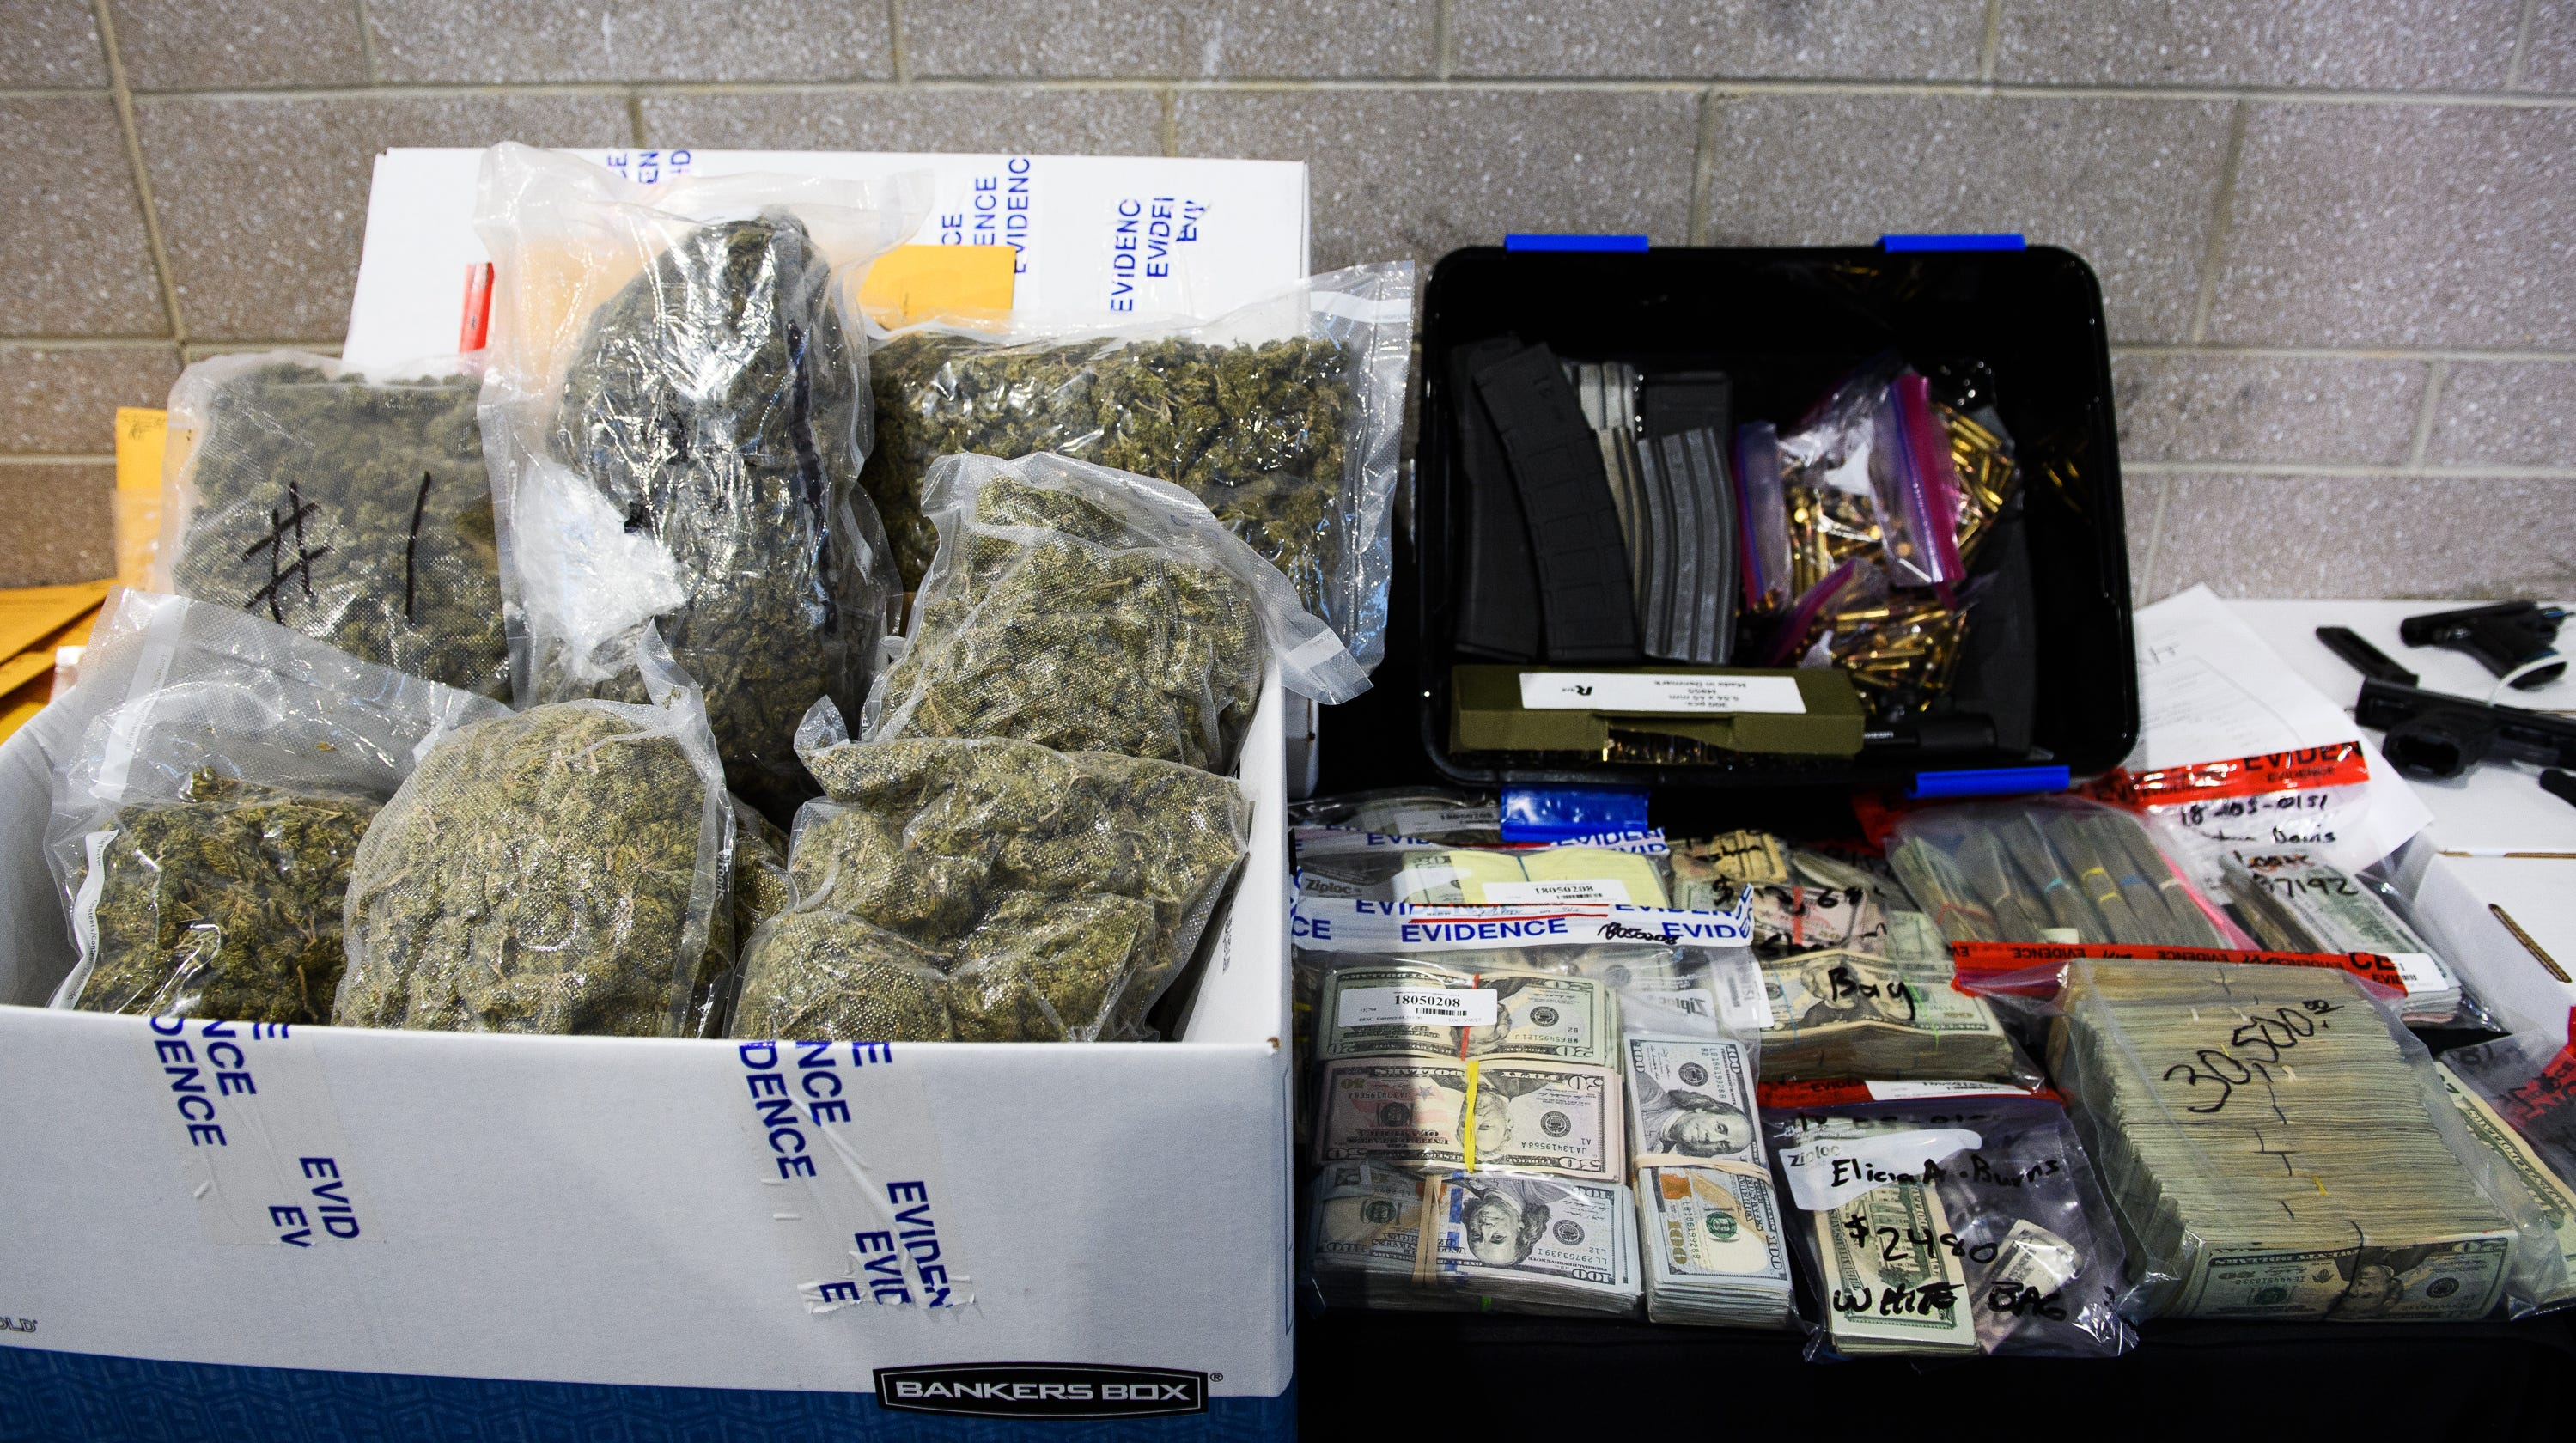 Large quantities of marijuana, money, firearms and other contraband sit on display during a Spartanburg County Sheriff's Office press conference on Operation Rolling Thunder's seizures on May 4, 2018.